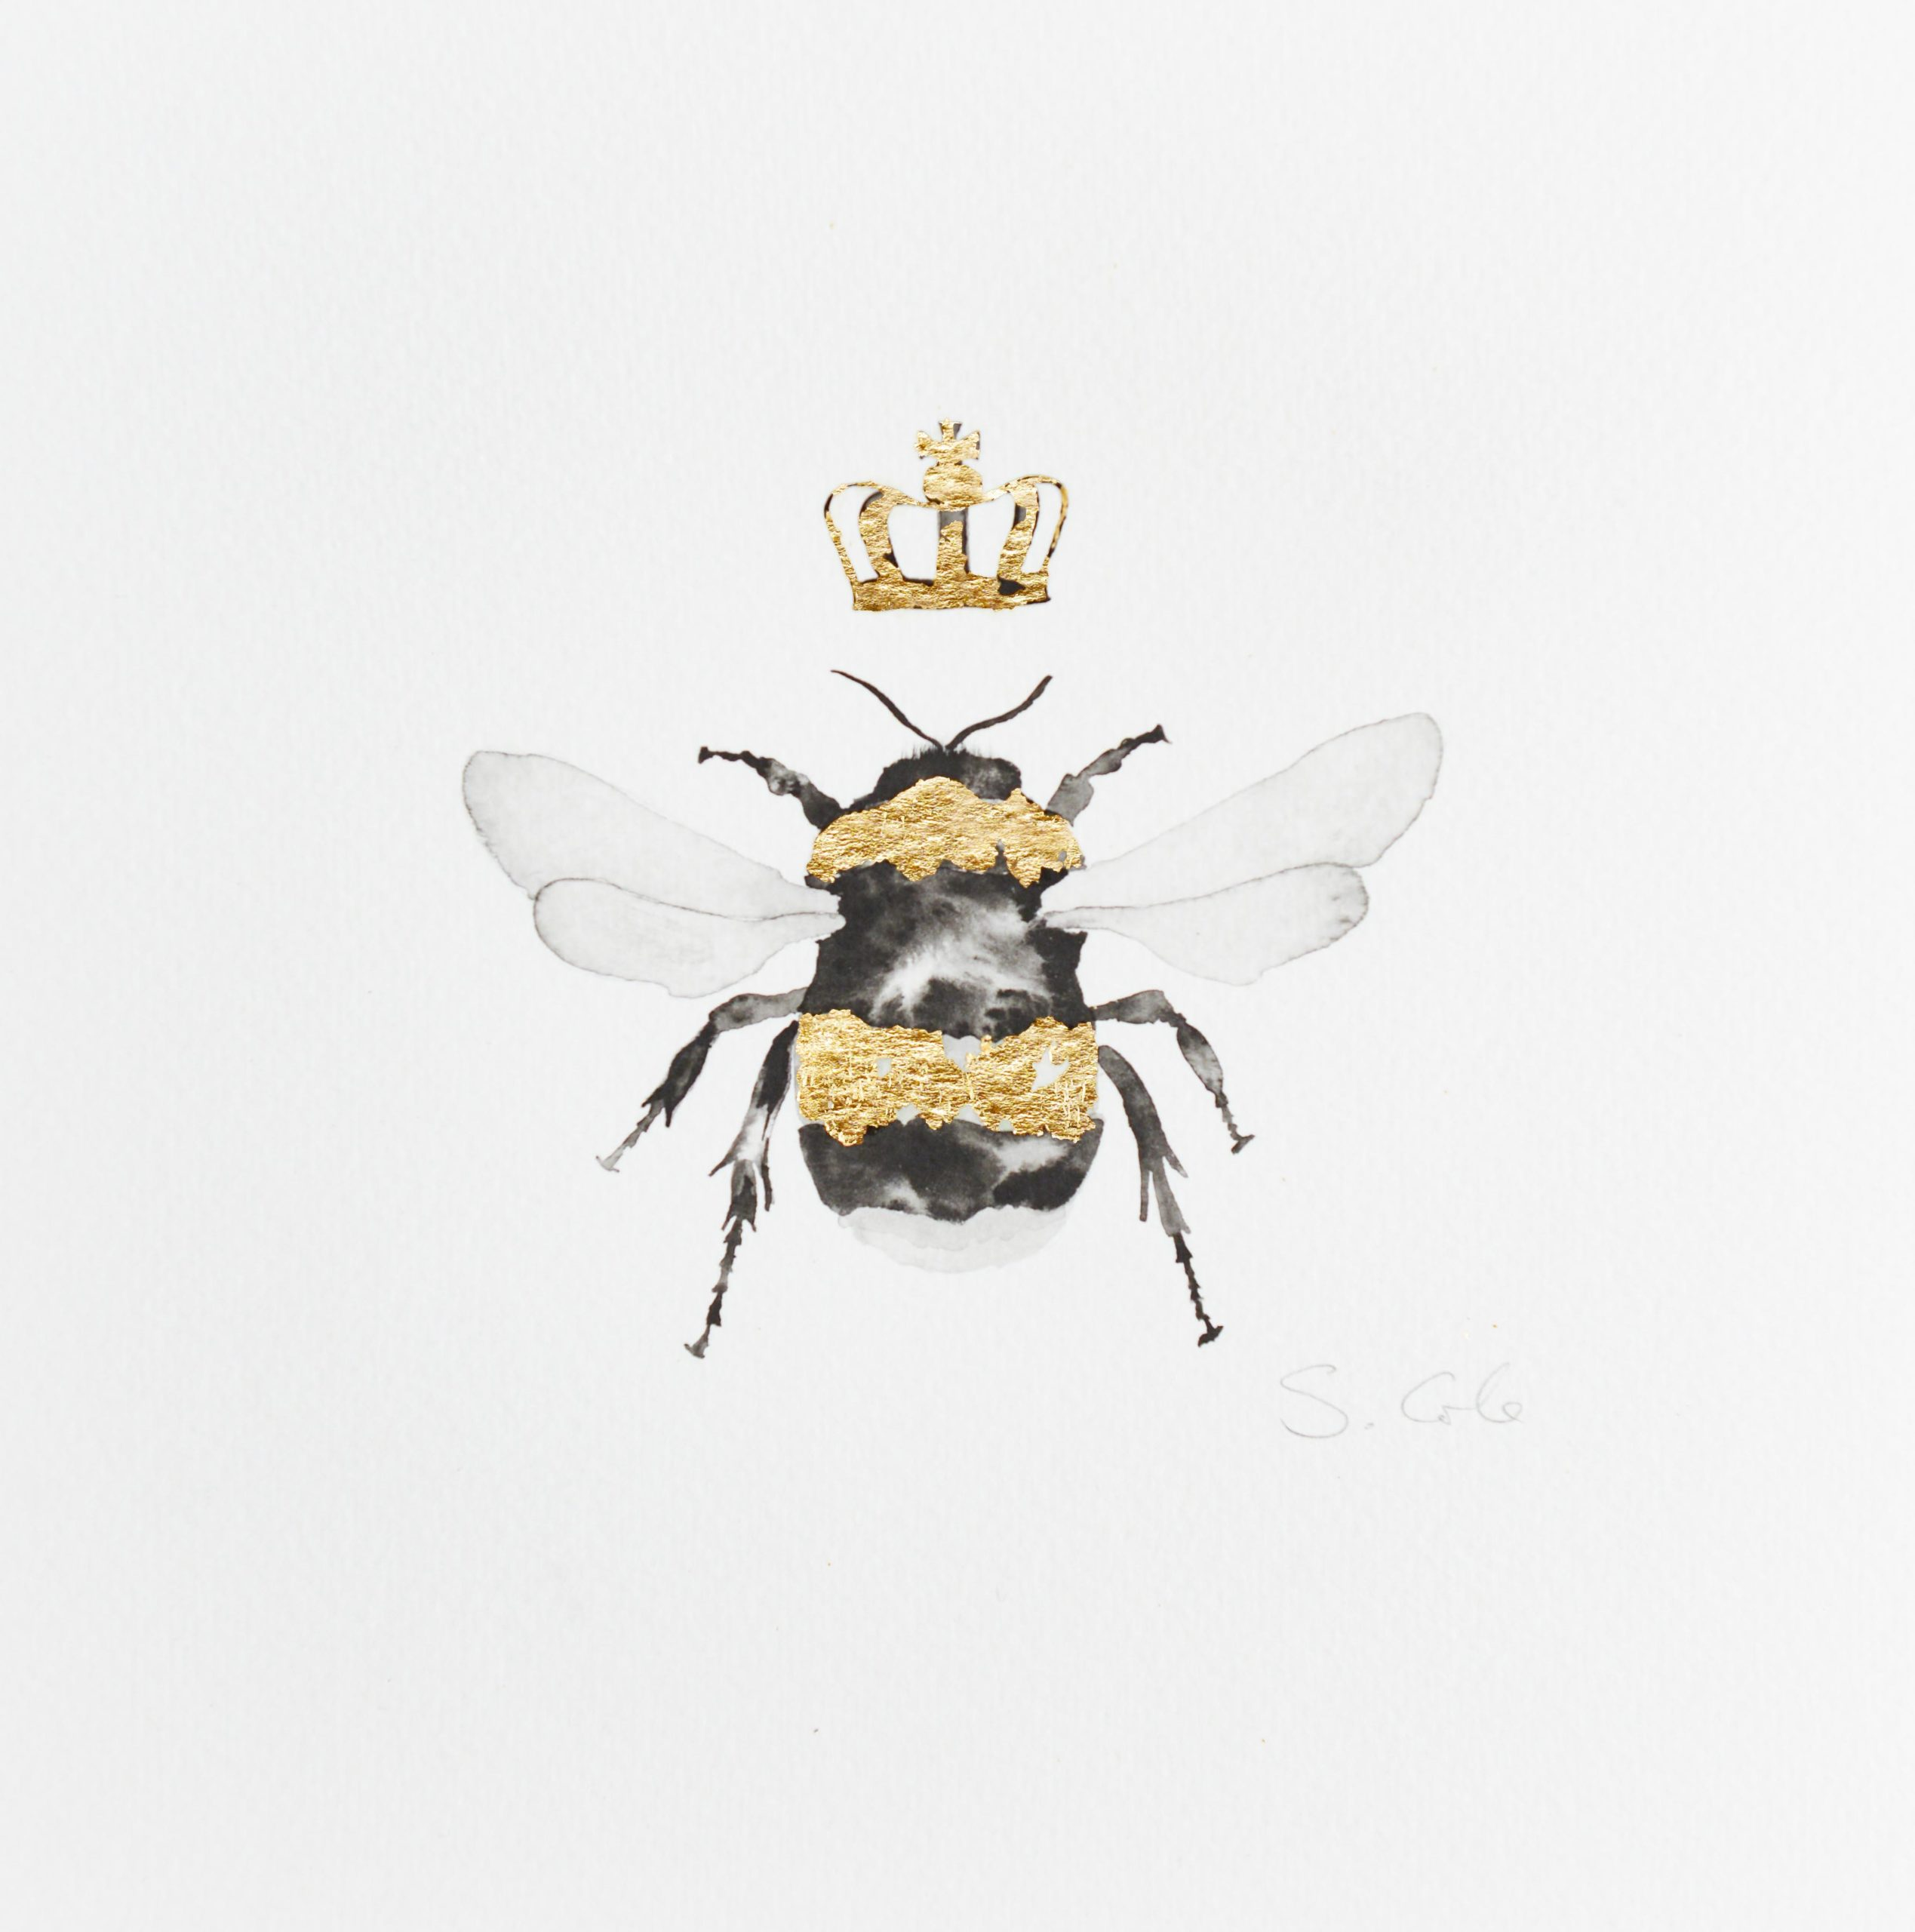 A HAND PAINTED PICTURE OF A BEE WITH A CROWN